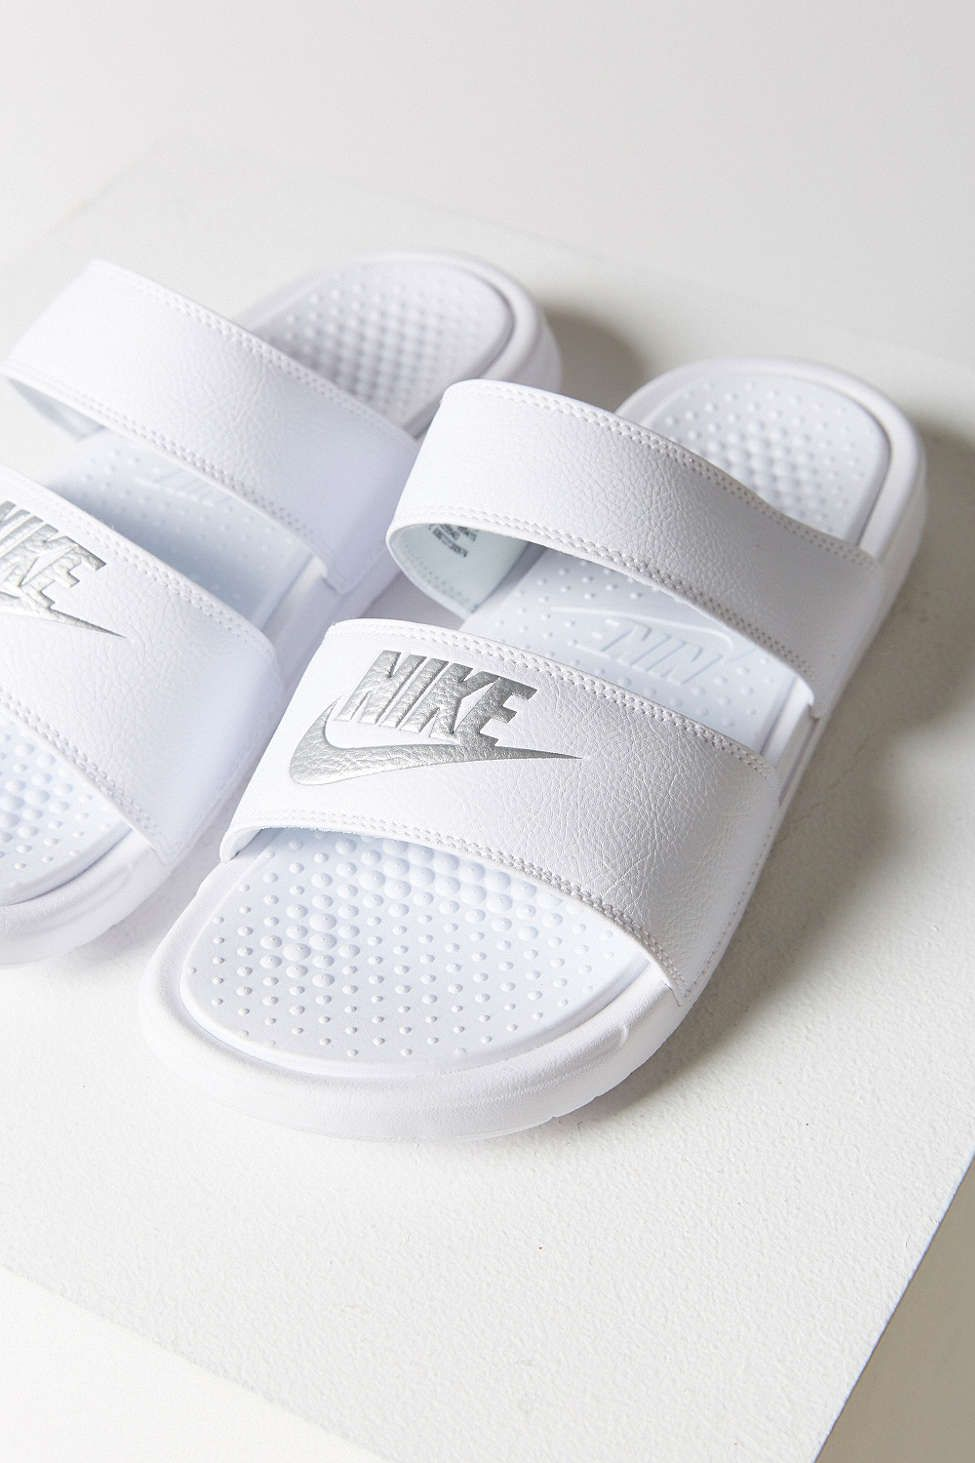 Nike Benassi Duo Ultra Slide C C Shoes Shoes Nike